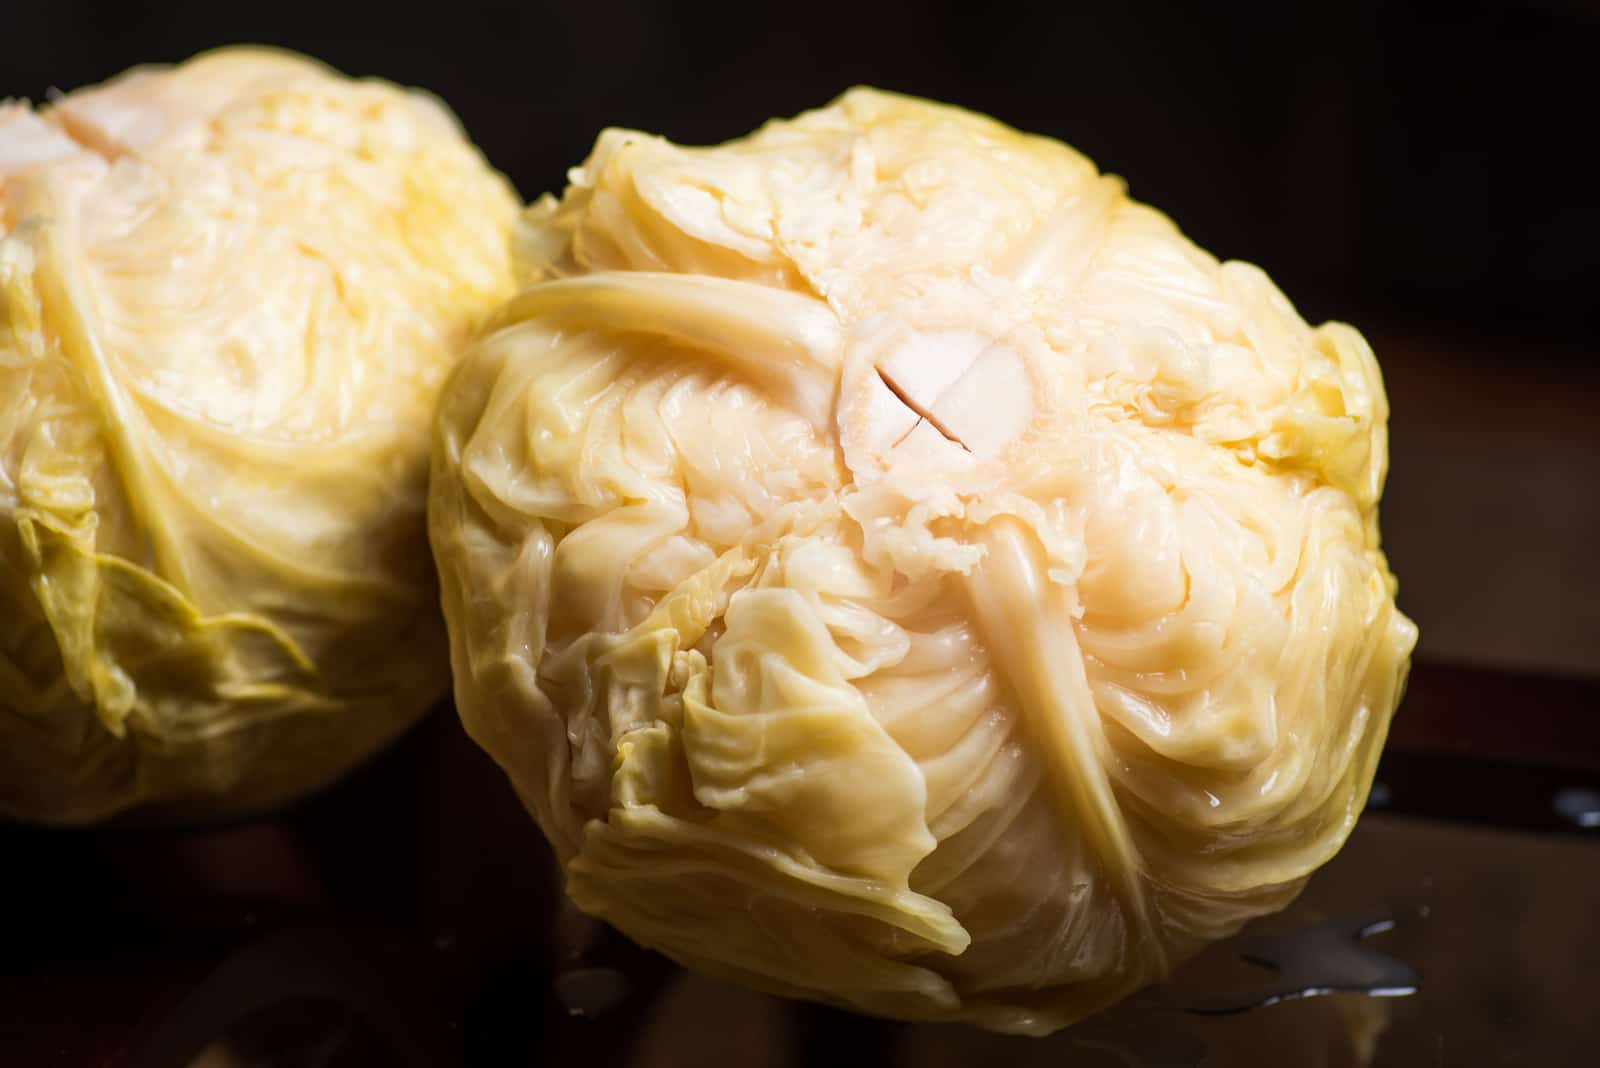 two pieces of sauerkraut stand on a black background